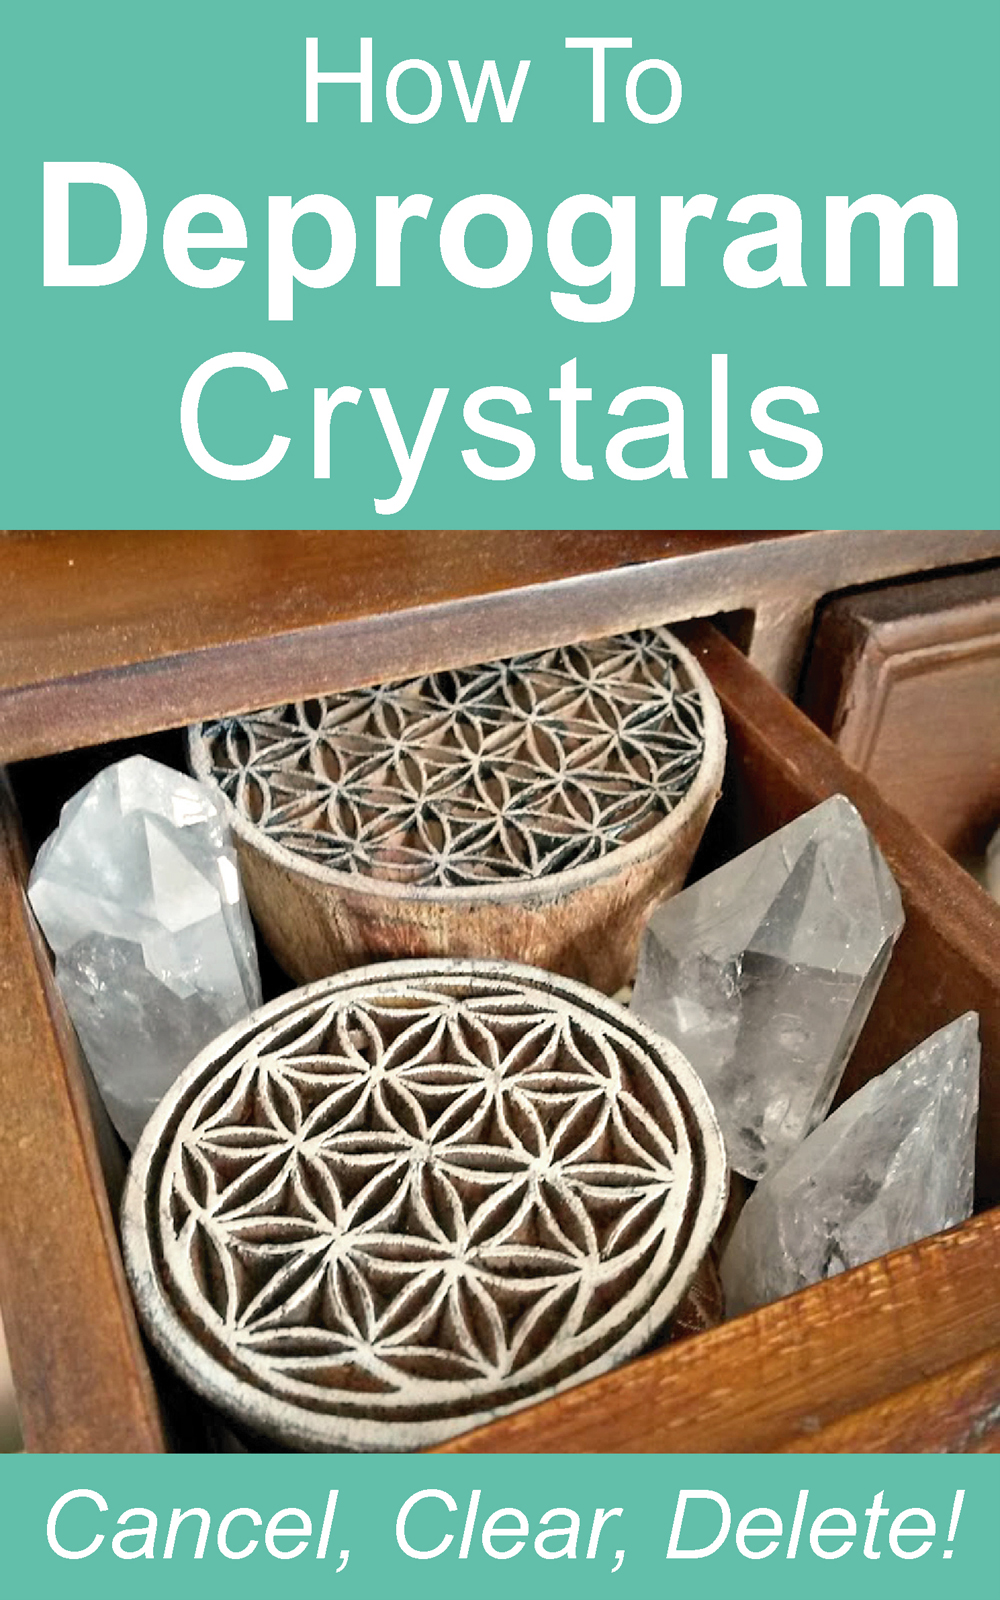 How To Deprogram Crystals. What to do when you want to clear a program